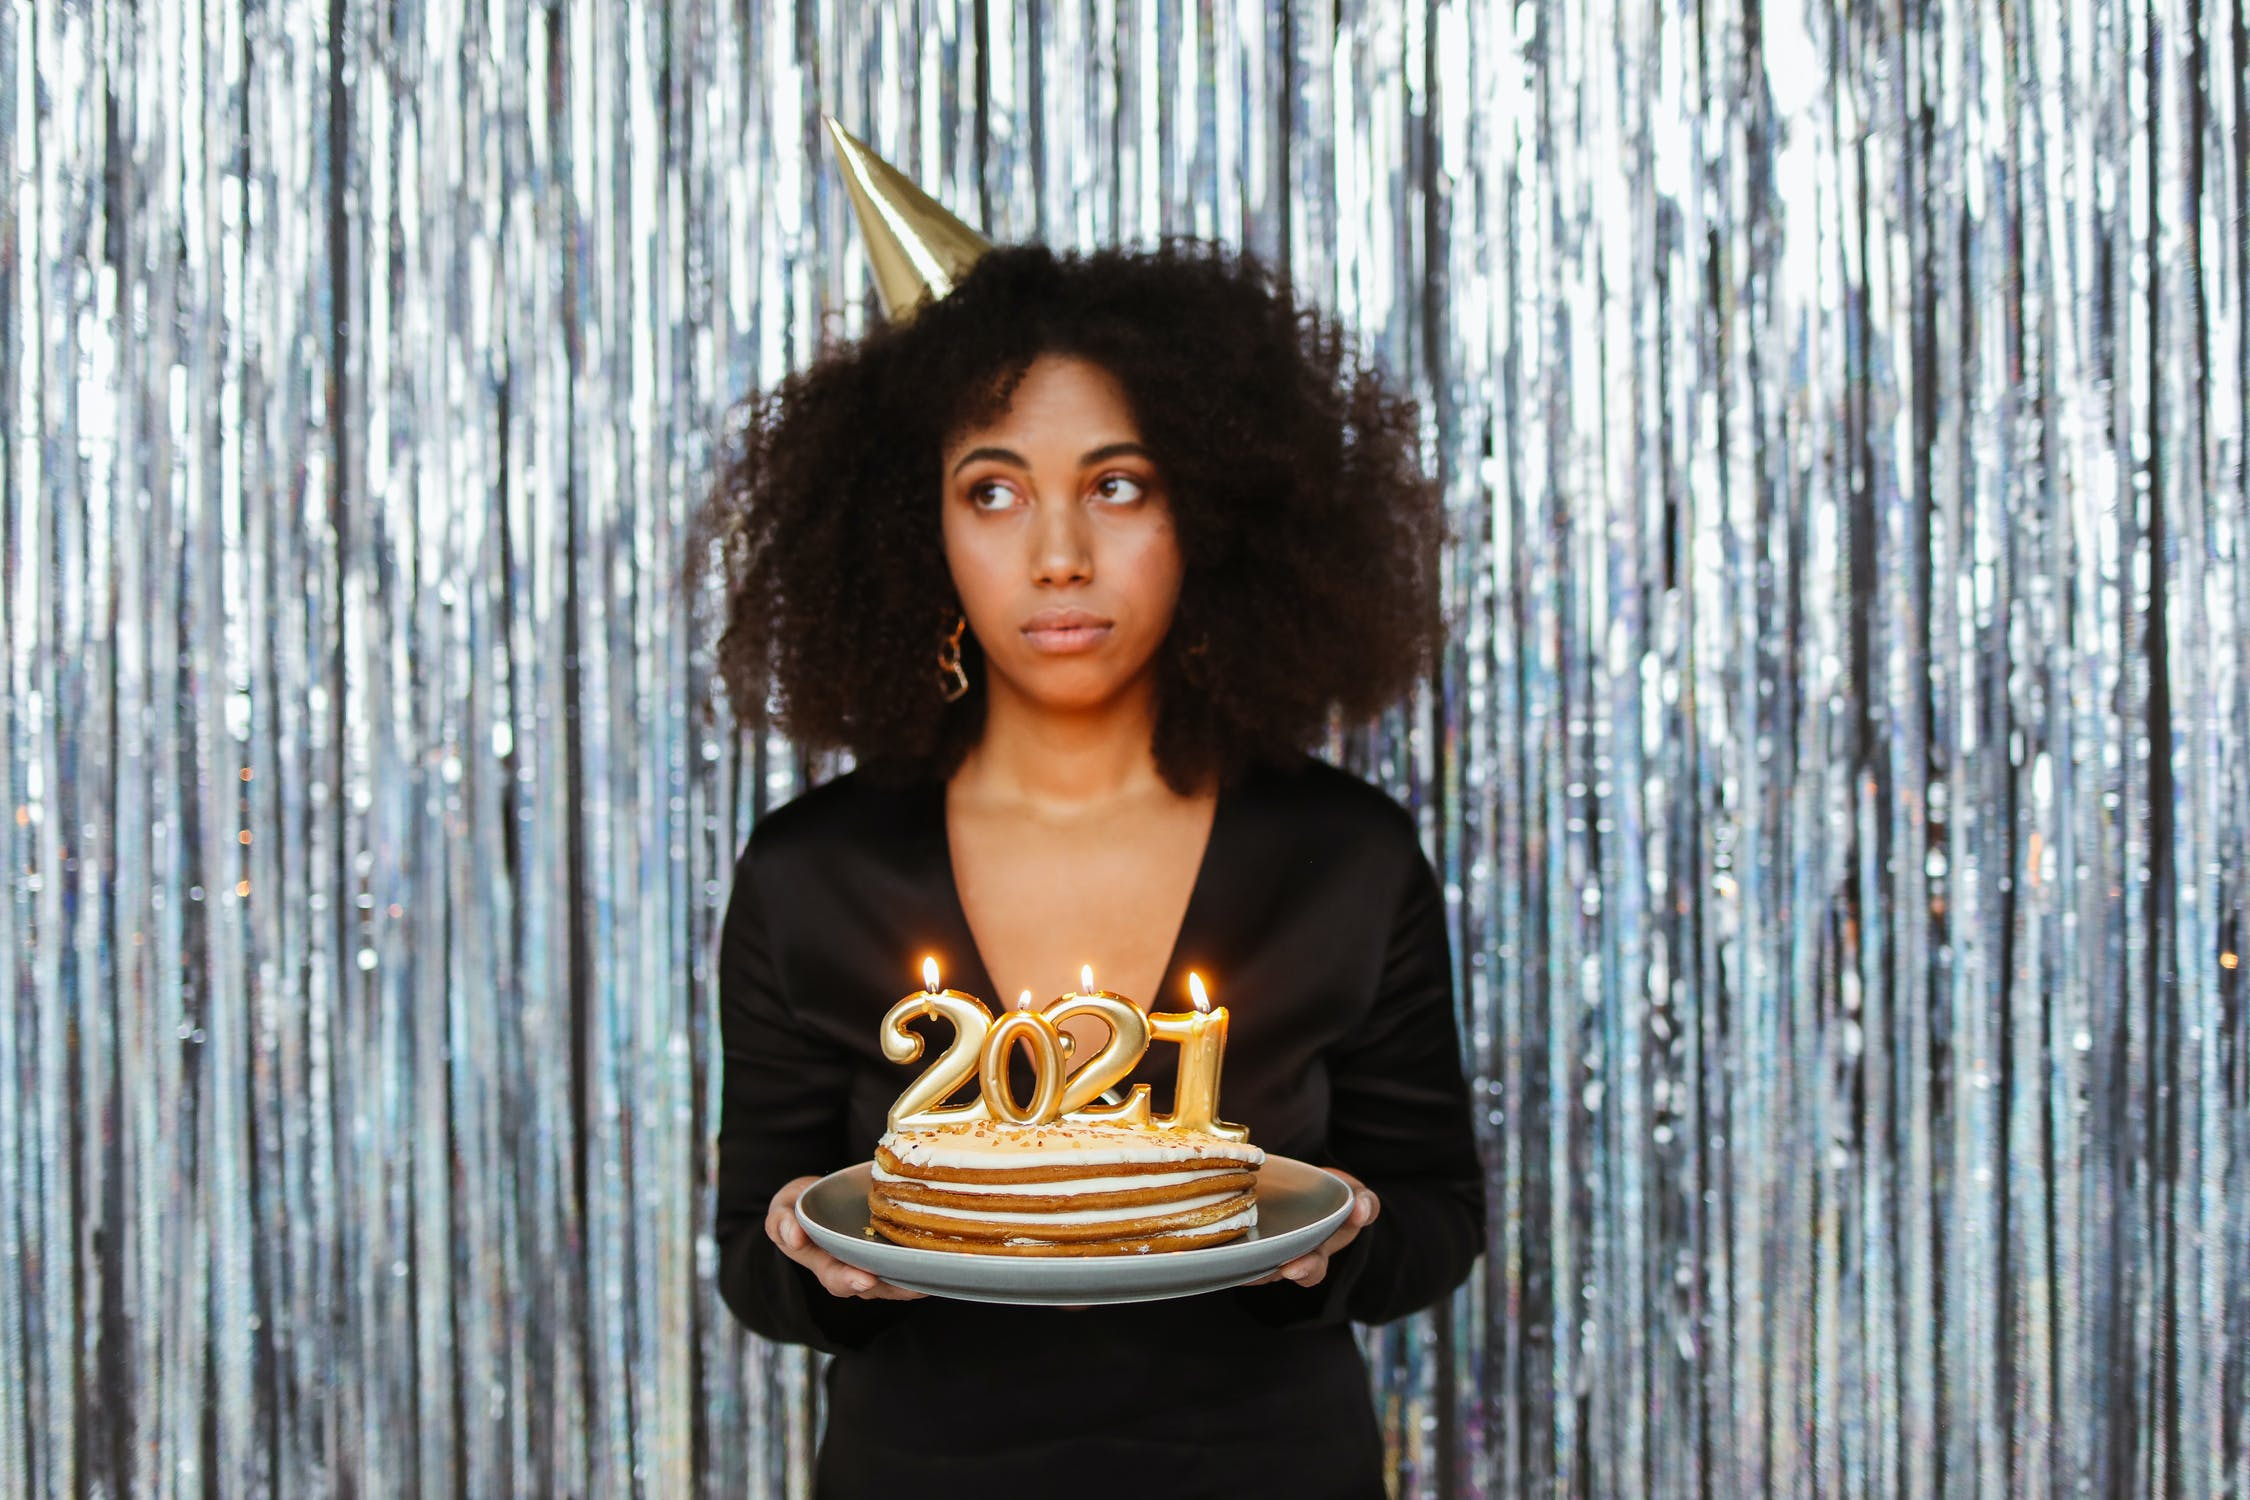 Woman holding 2021 New Year cake